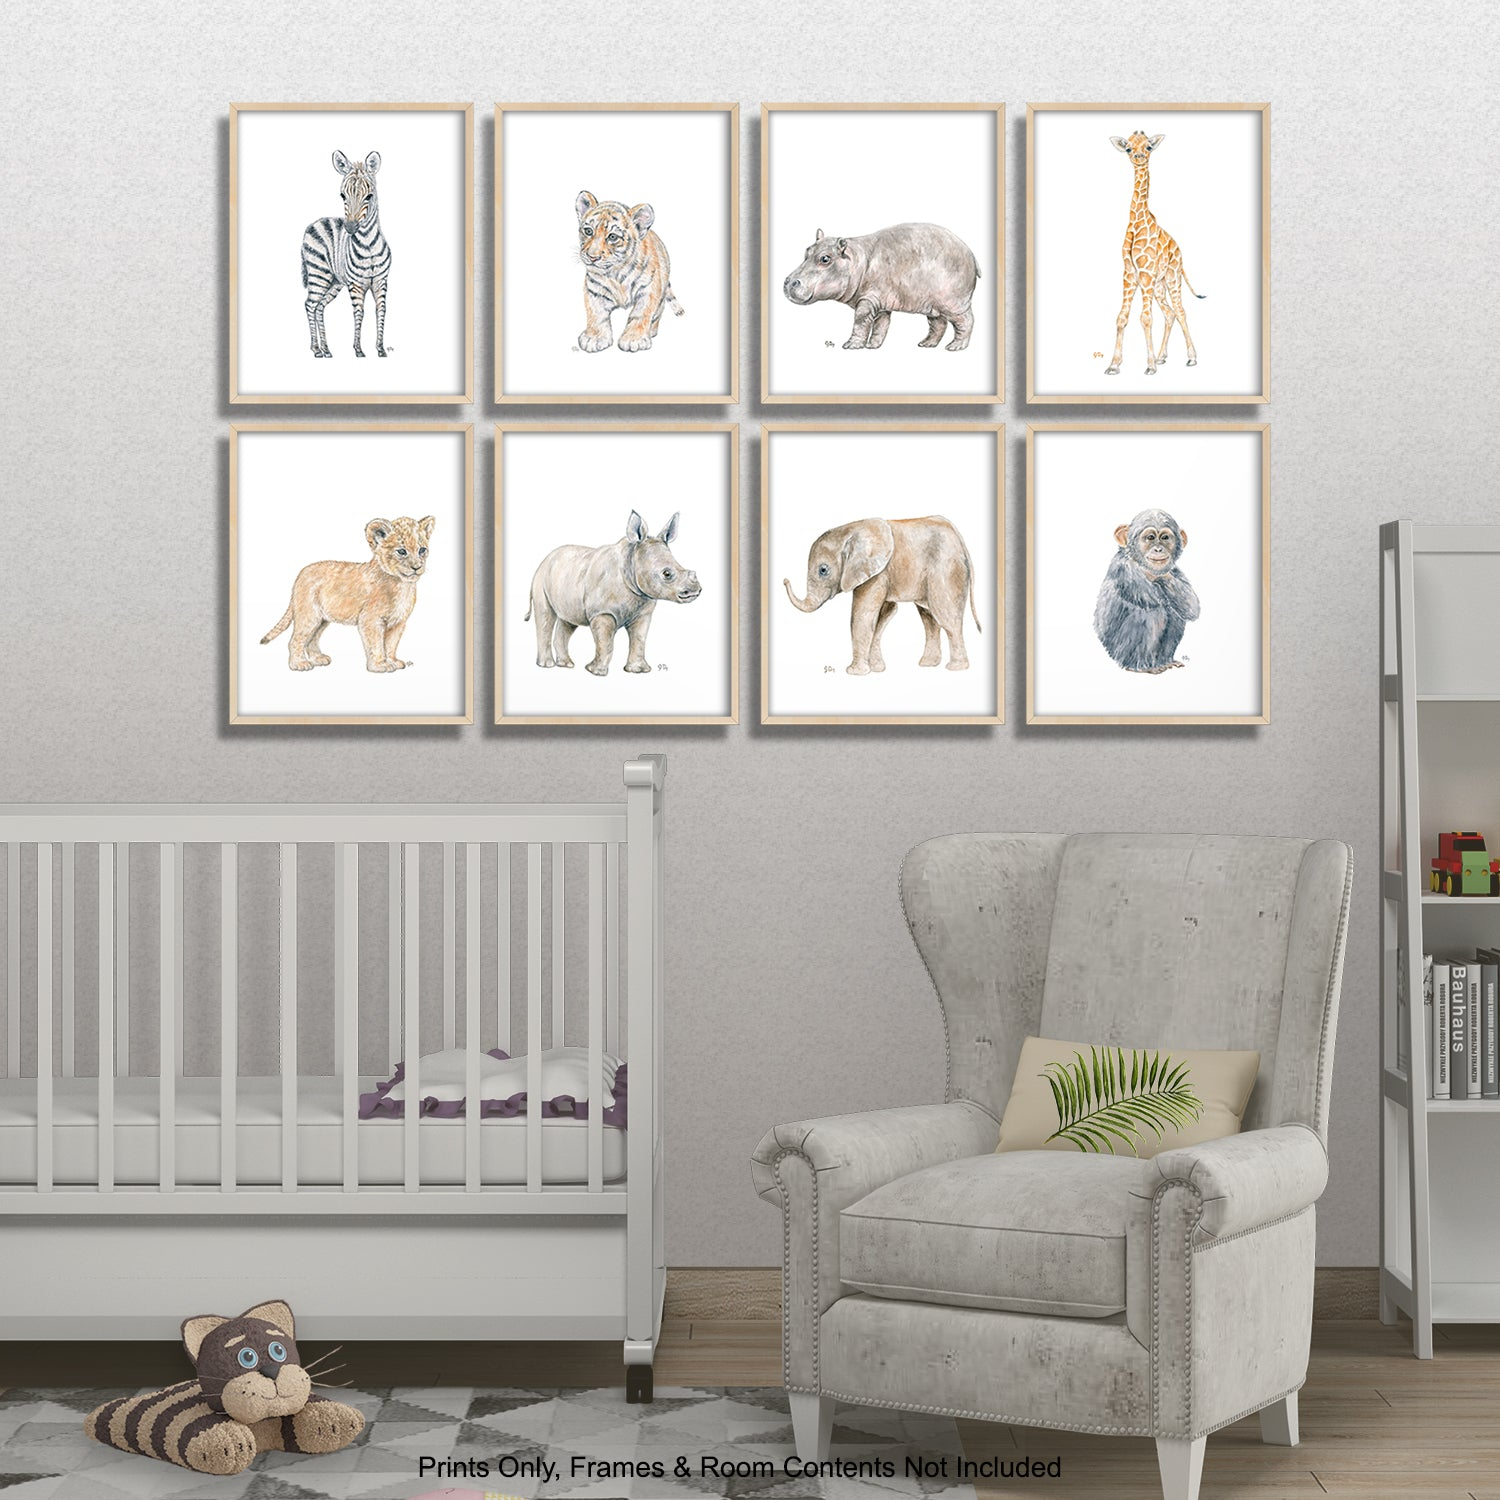 Safari Animal Prints Set of 8